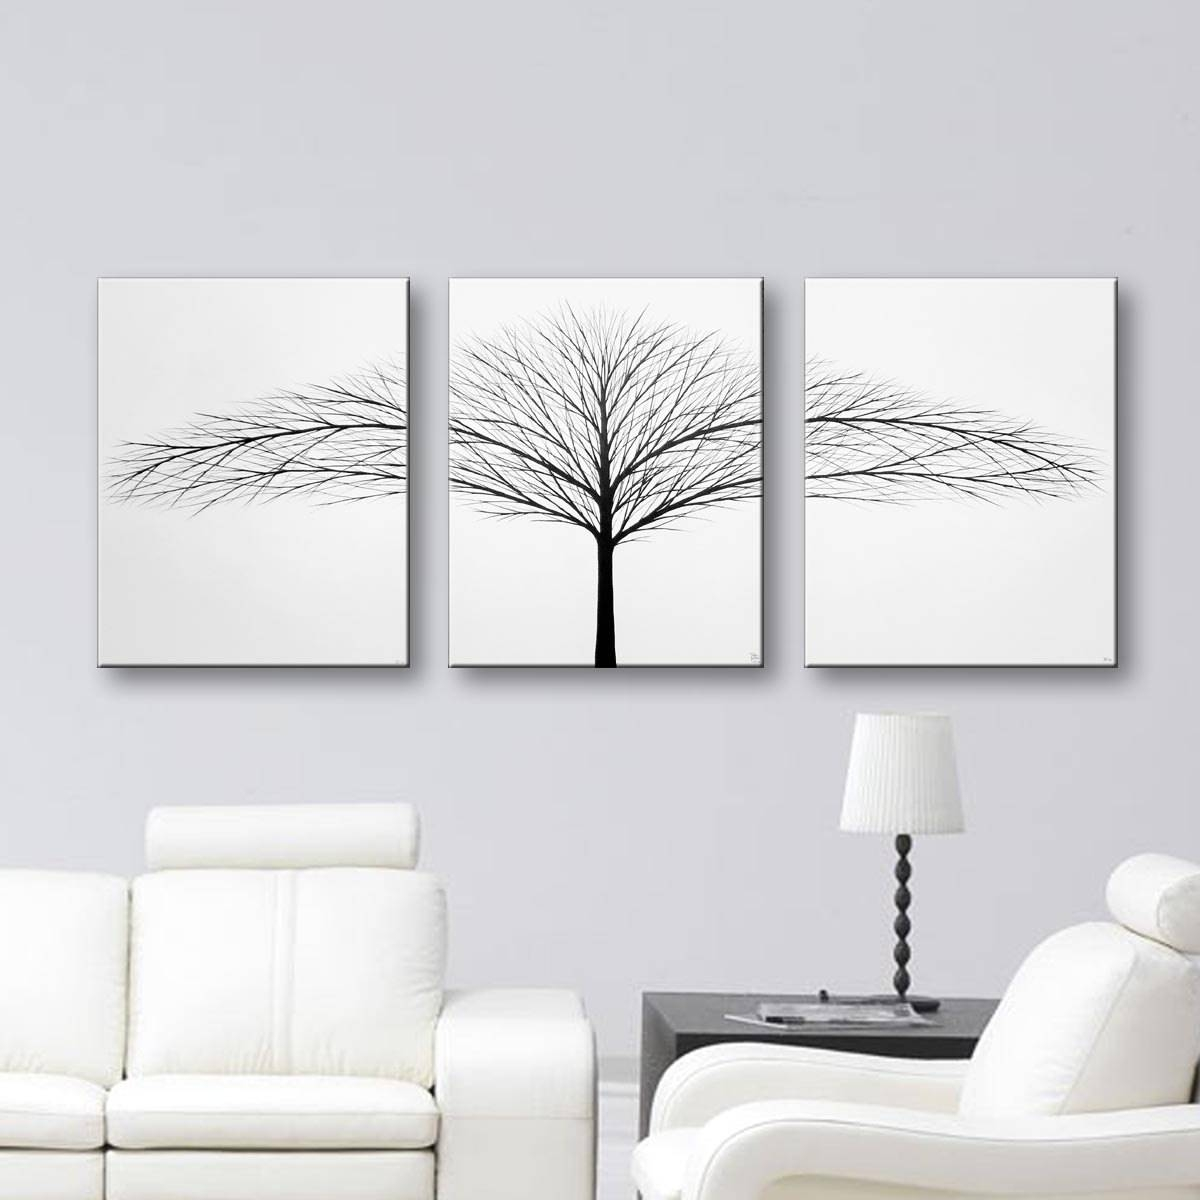 Canvas Art Bedroom Wall Decor 3 Piece Wall Art Minimalist Throughout 2018 Black And White Wall Art (View 5 of 16)